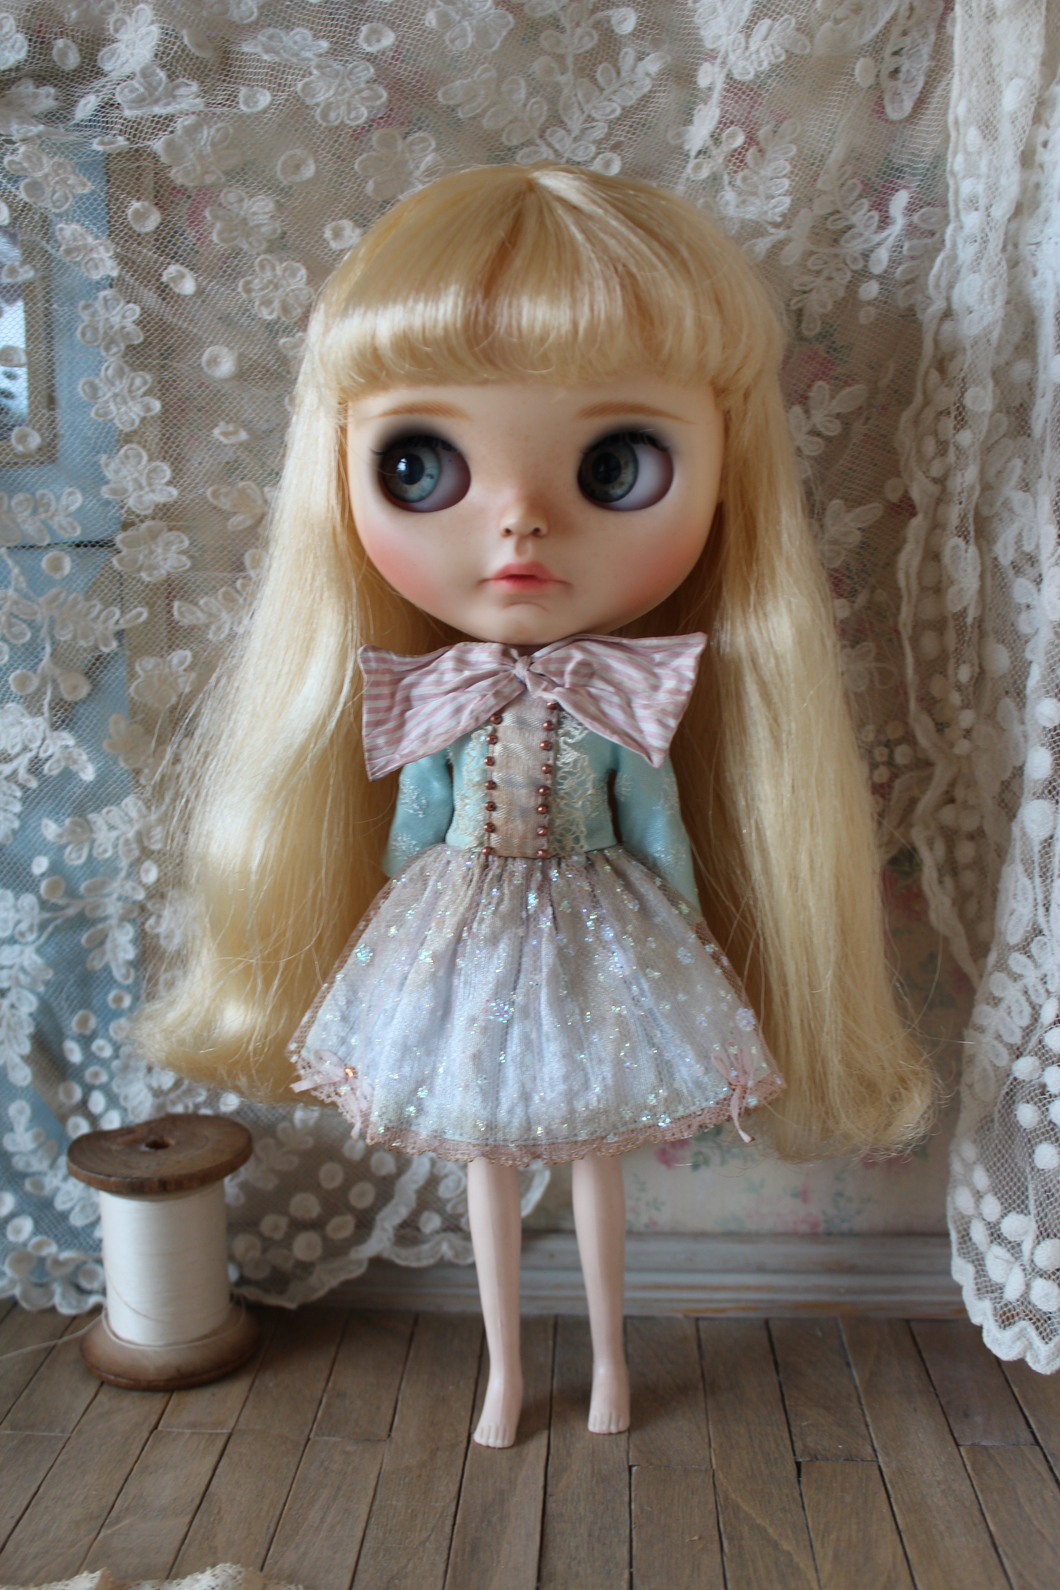 Soap Bubbles. A dress for Blythe